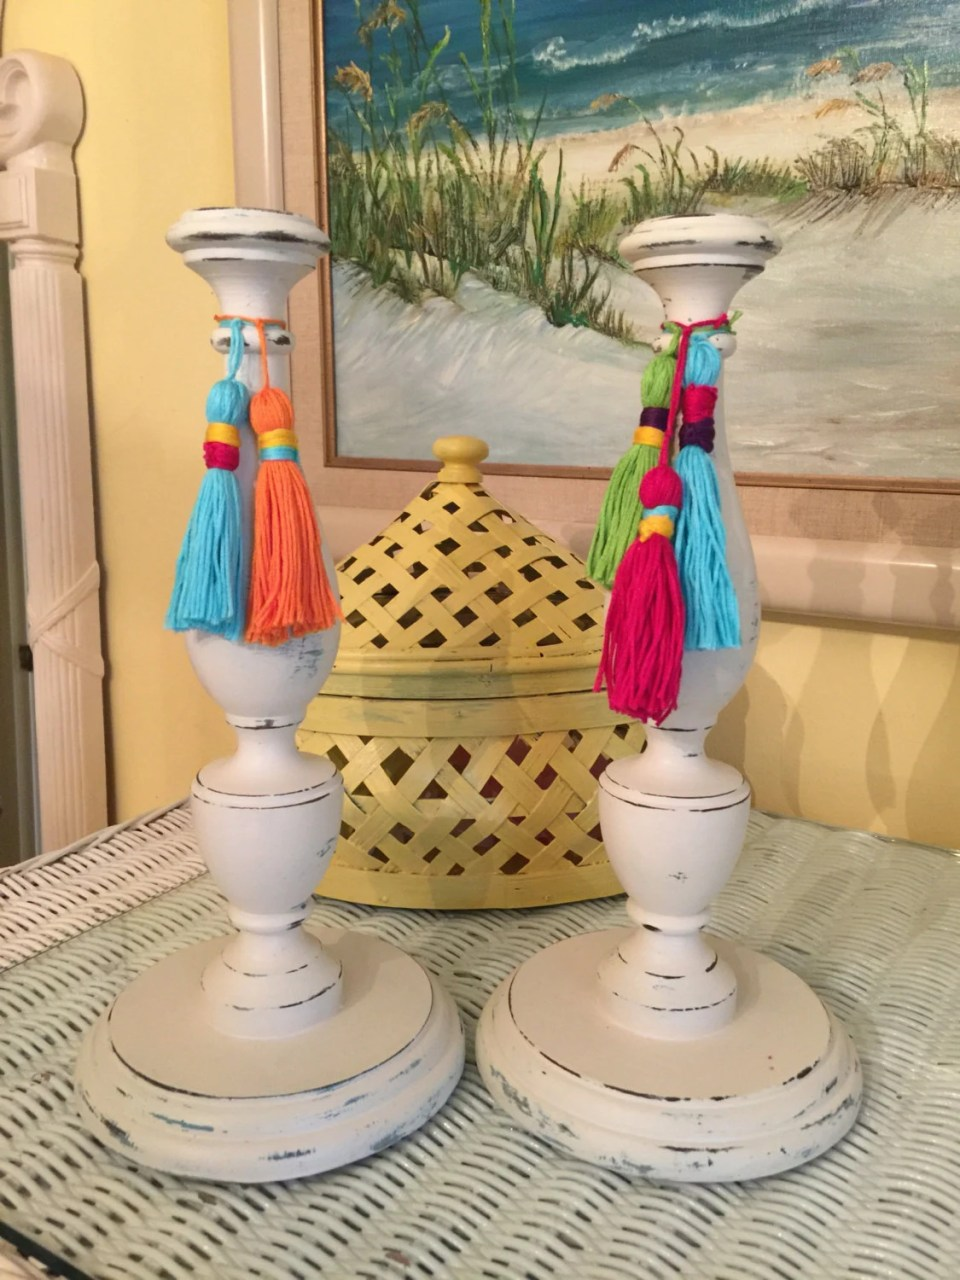 Hand painted candle sticks with handmade tassels